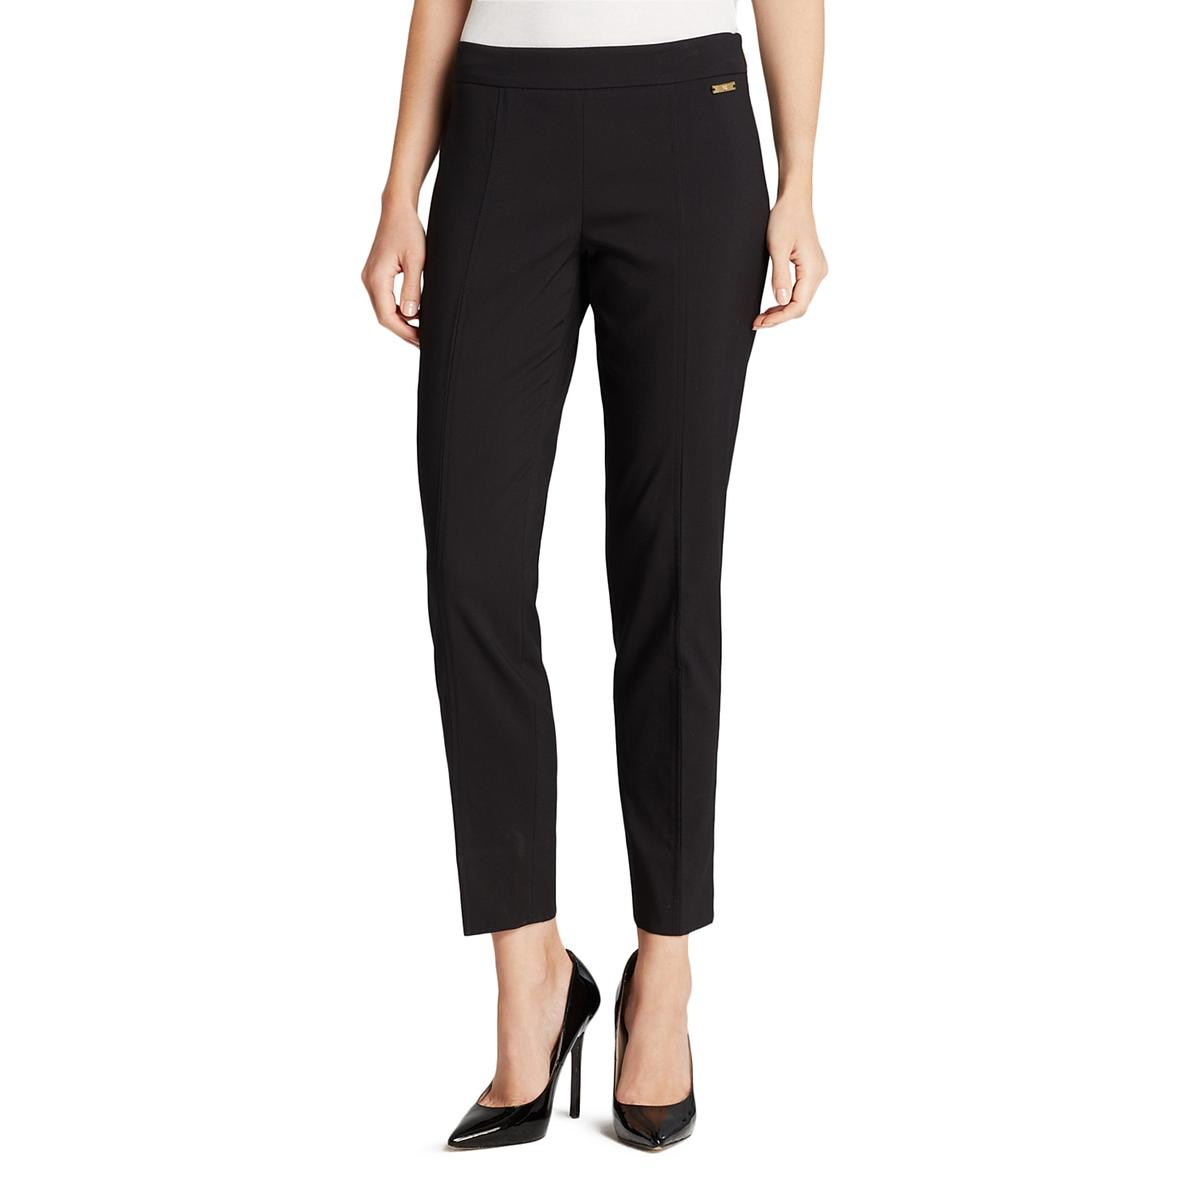 Tory Burch Womens Callie Woven Flat Front Dress Pants